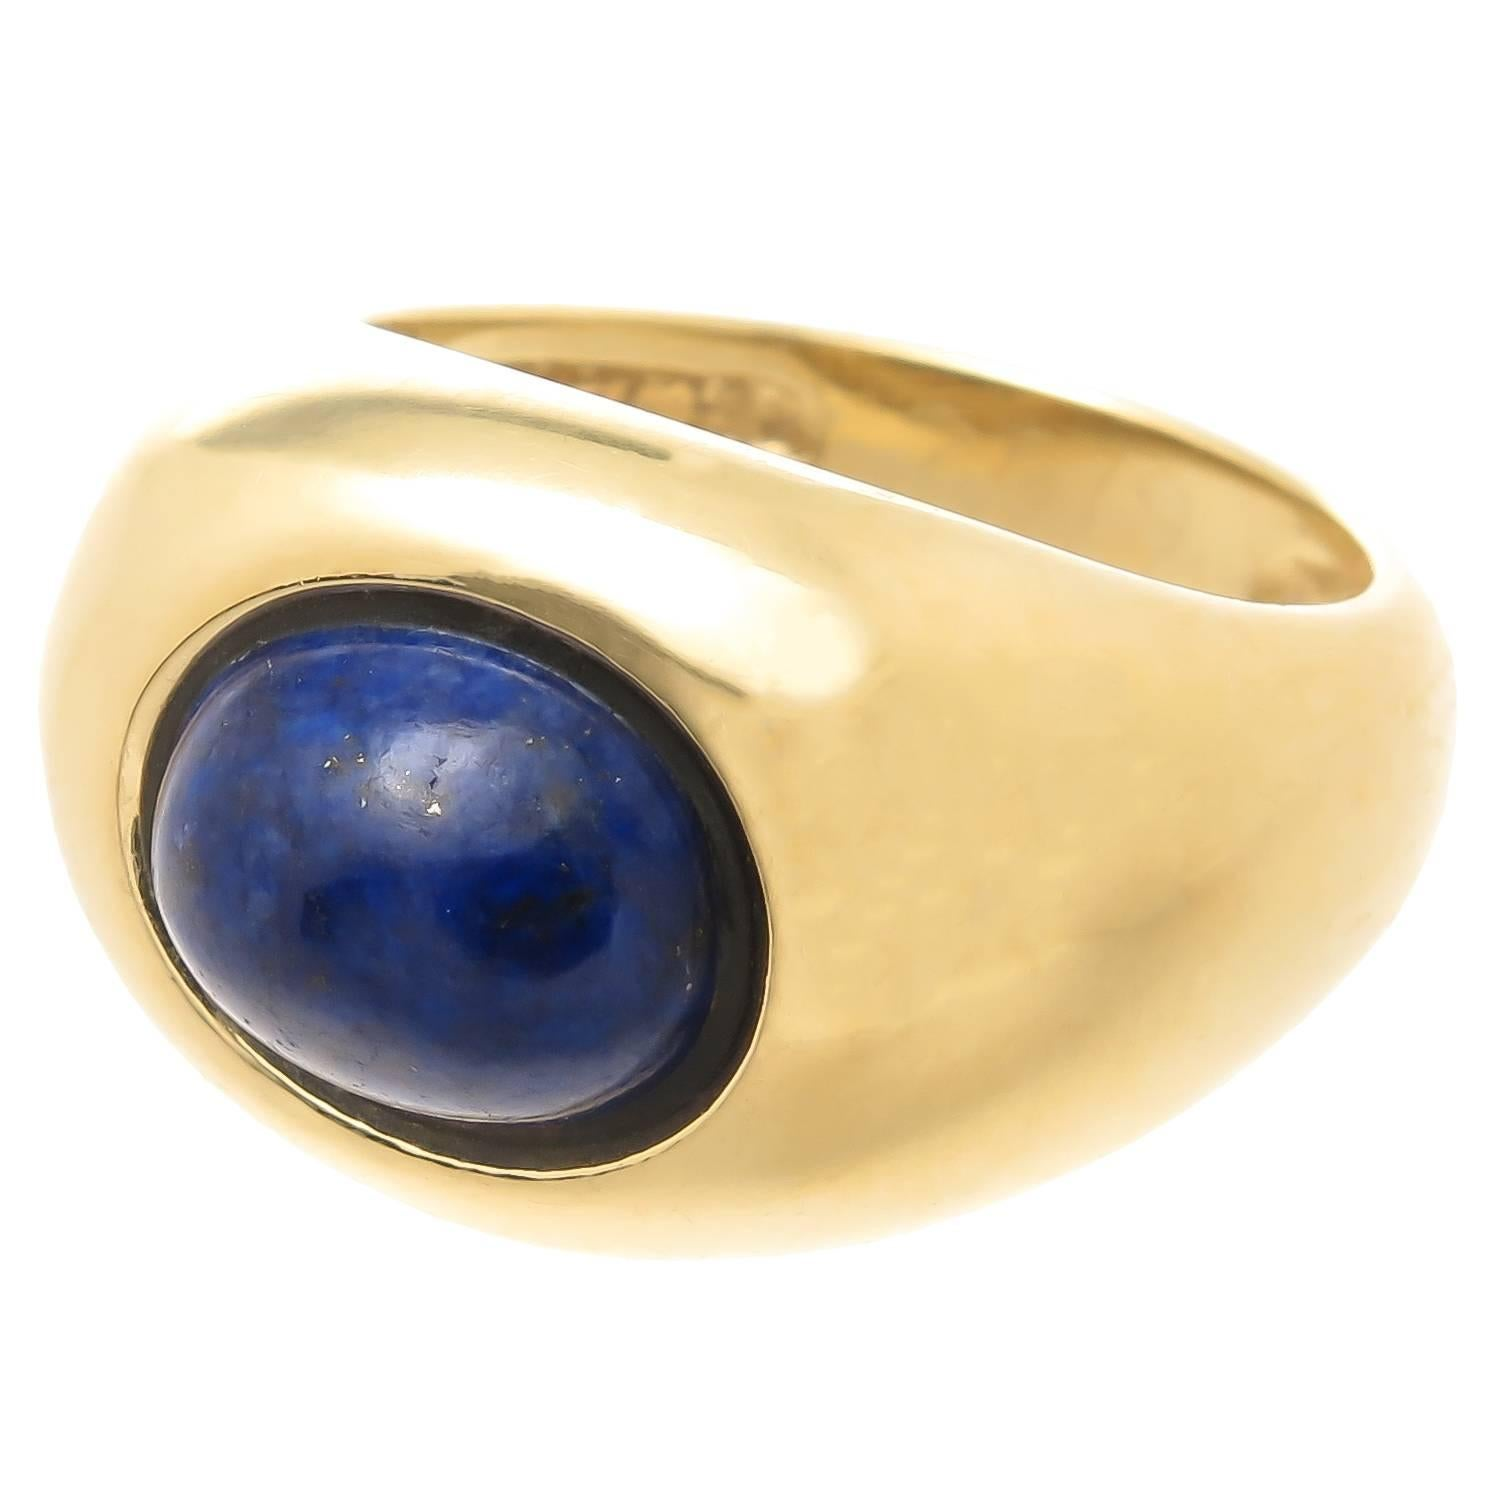 ff0cc2788 Tiffany and Co. Lapis Gold Ring For Sale at 1stdibs